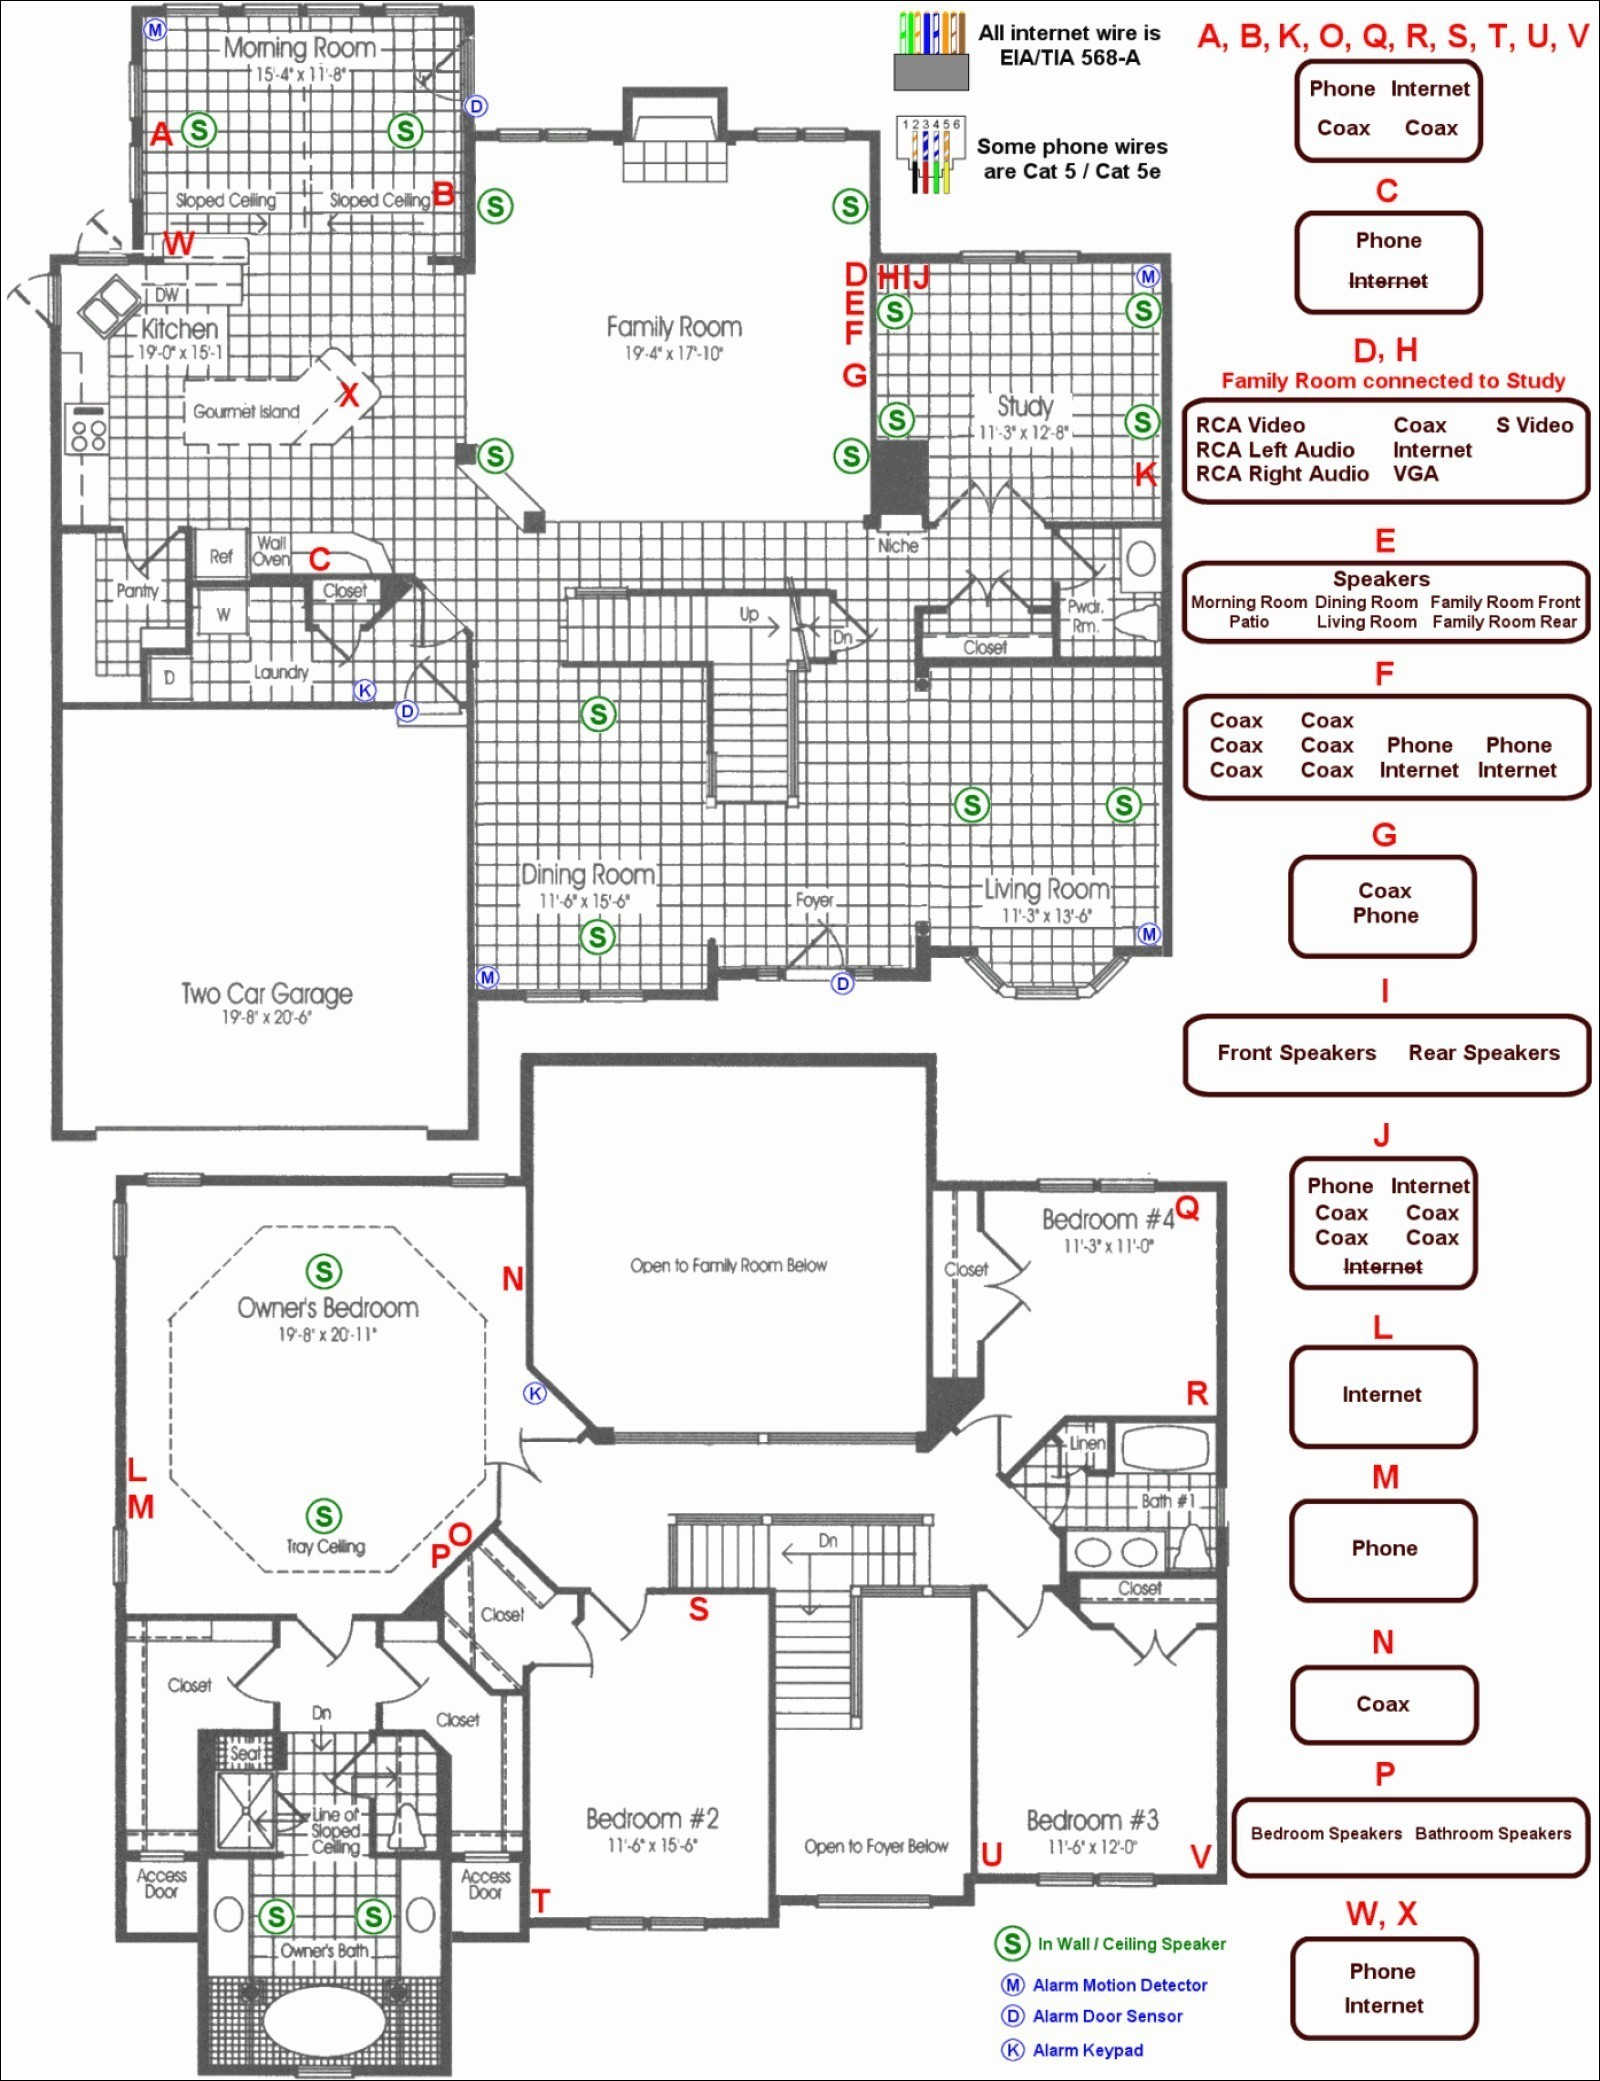 beginners guide to reading schematics best of wiring. Black Bedroom Furniture Sets. Home Design Ideas